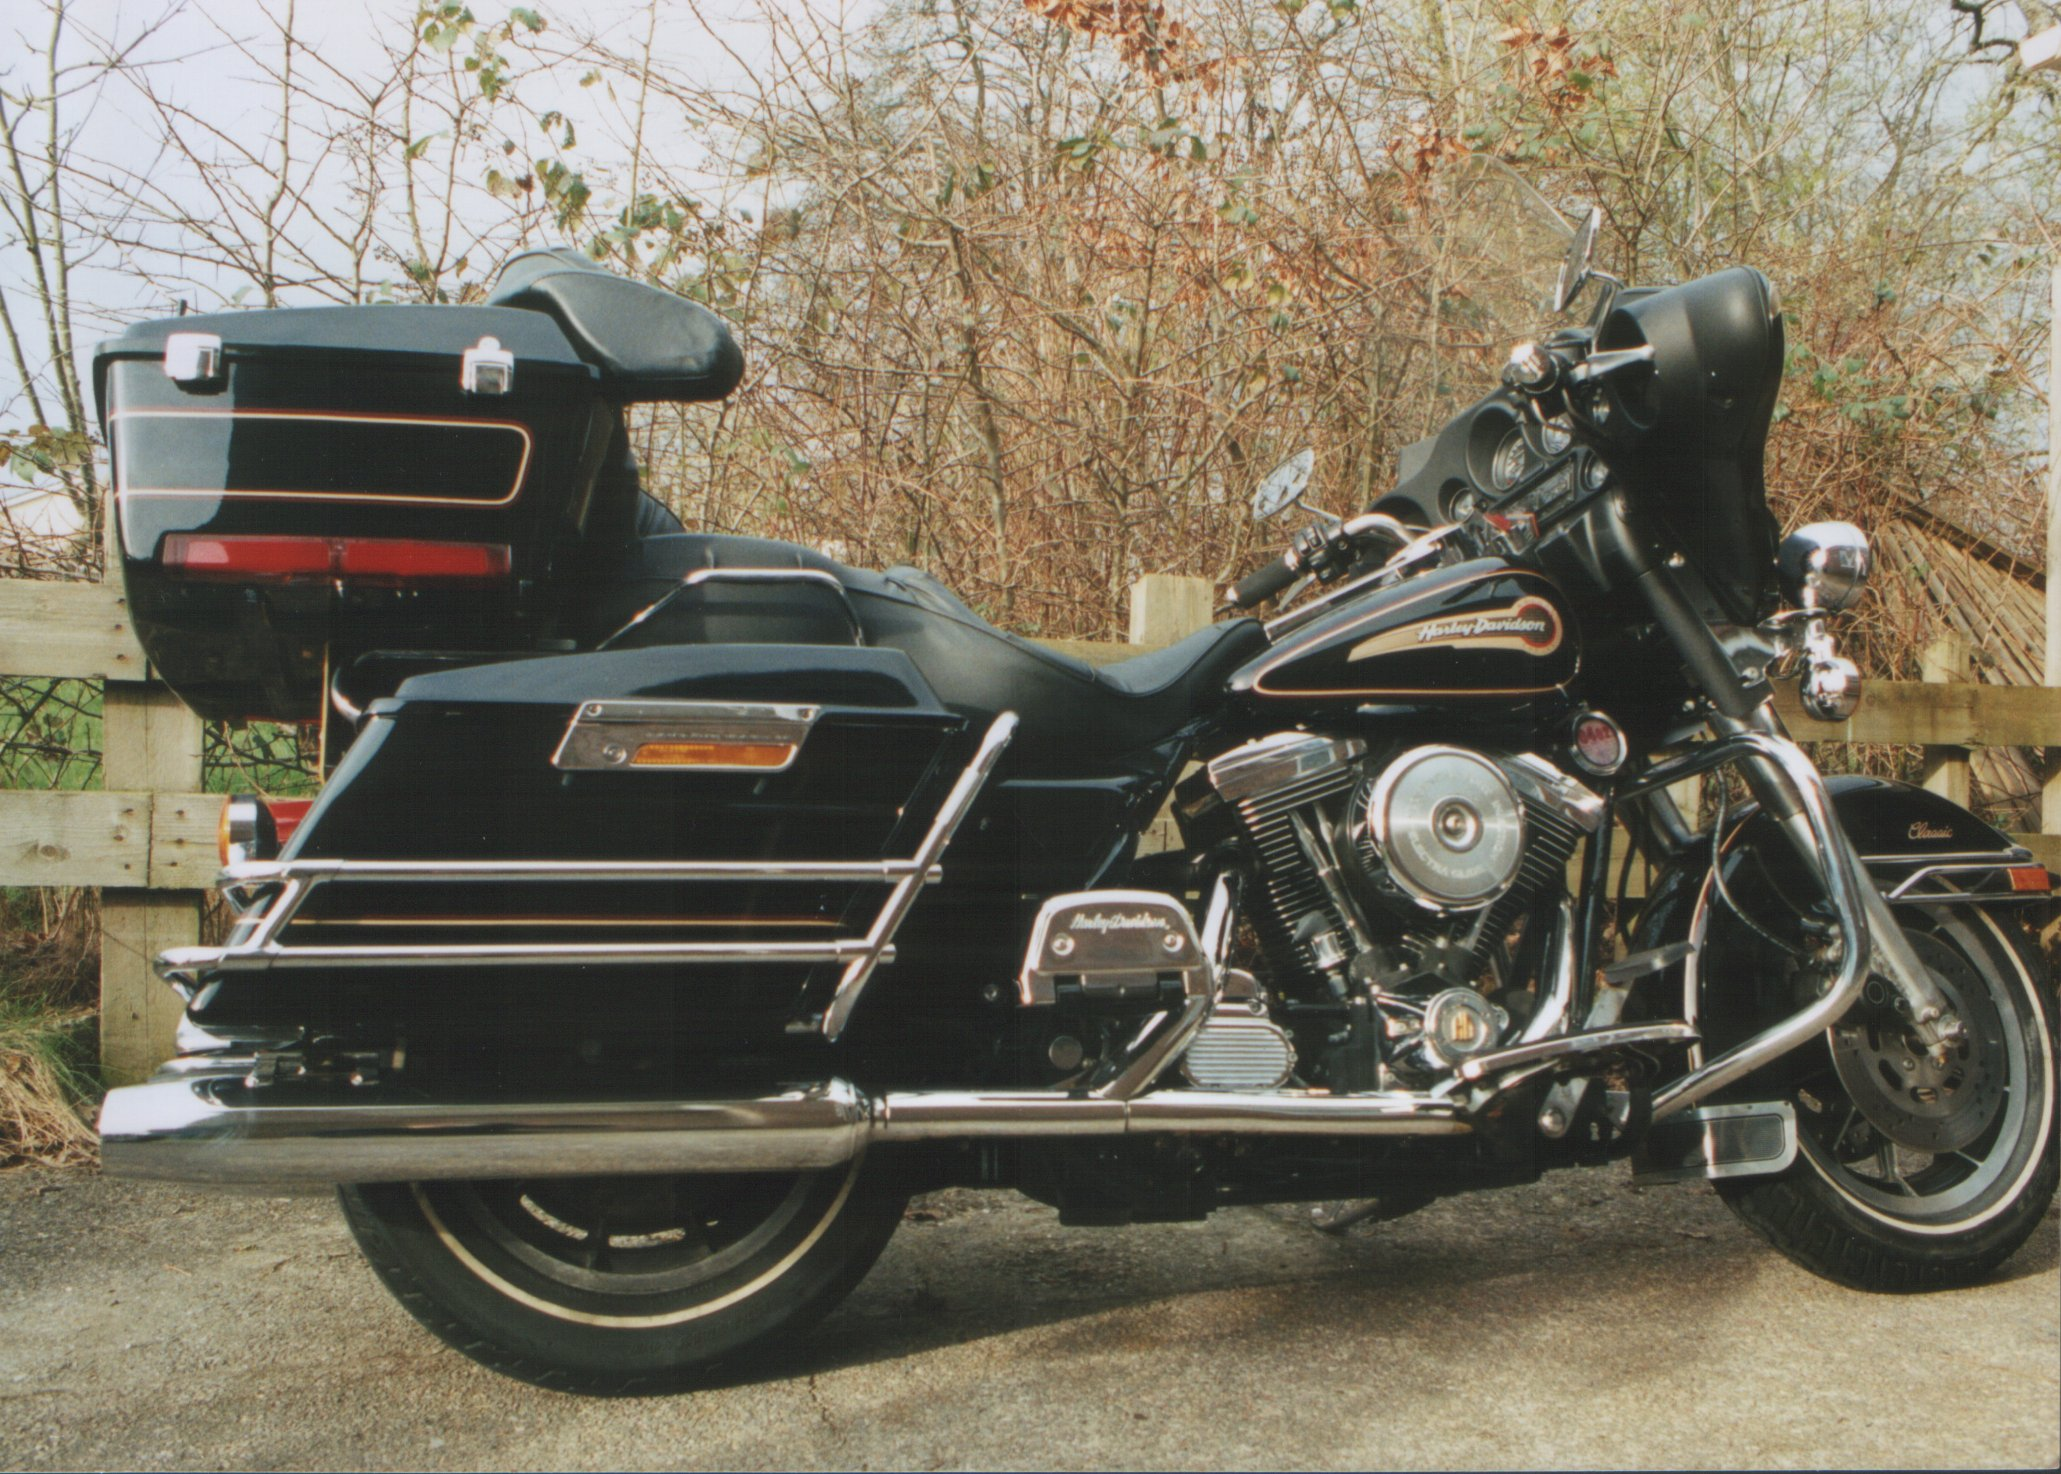 Heritage Softail 1980 Related Keywords & Suggestions ... on harley-davidson touring wiring-diagram, harley-davidson dyna wiring-diagram, harley-davidson fxr wiring-diagram,